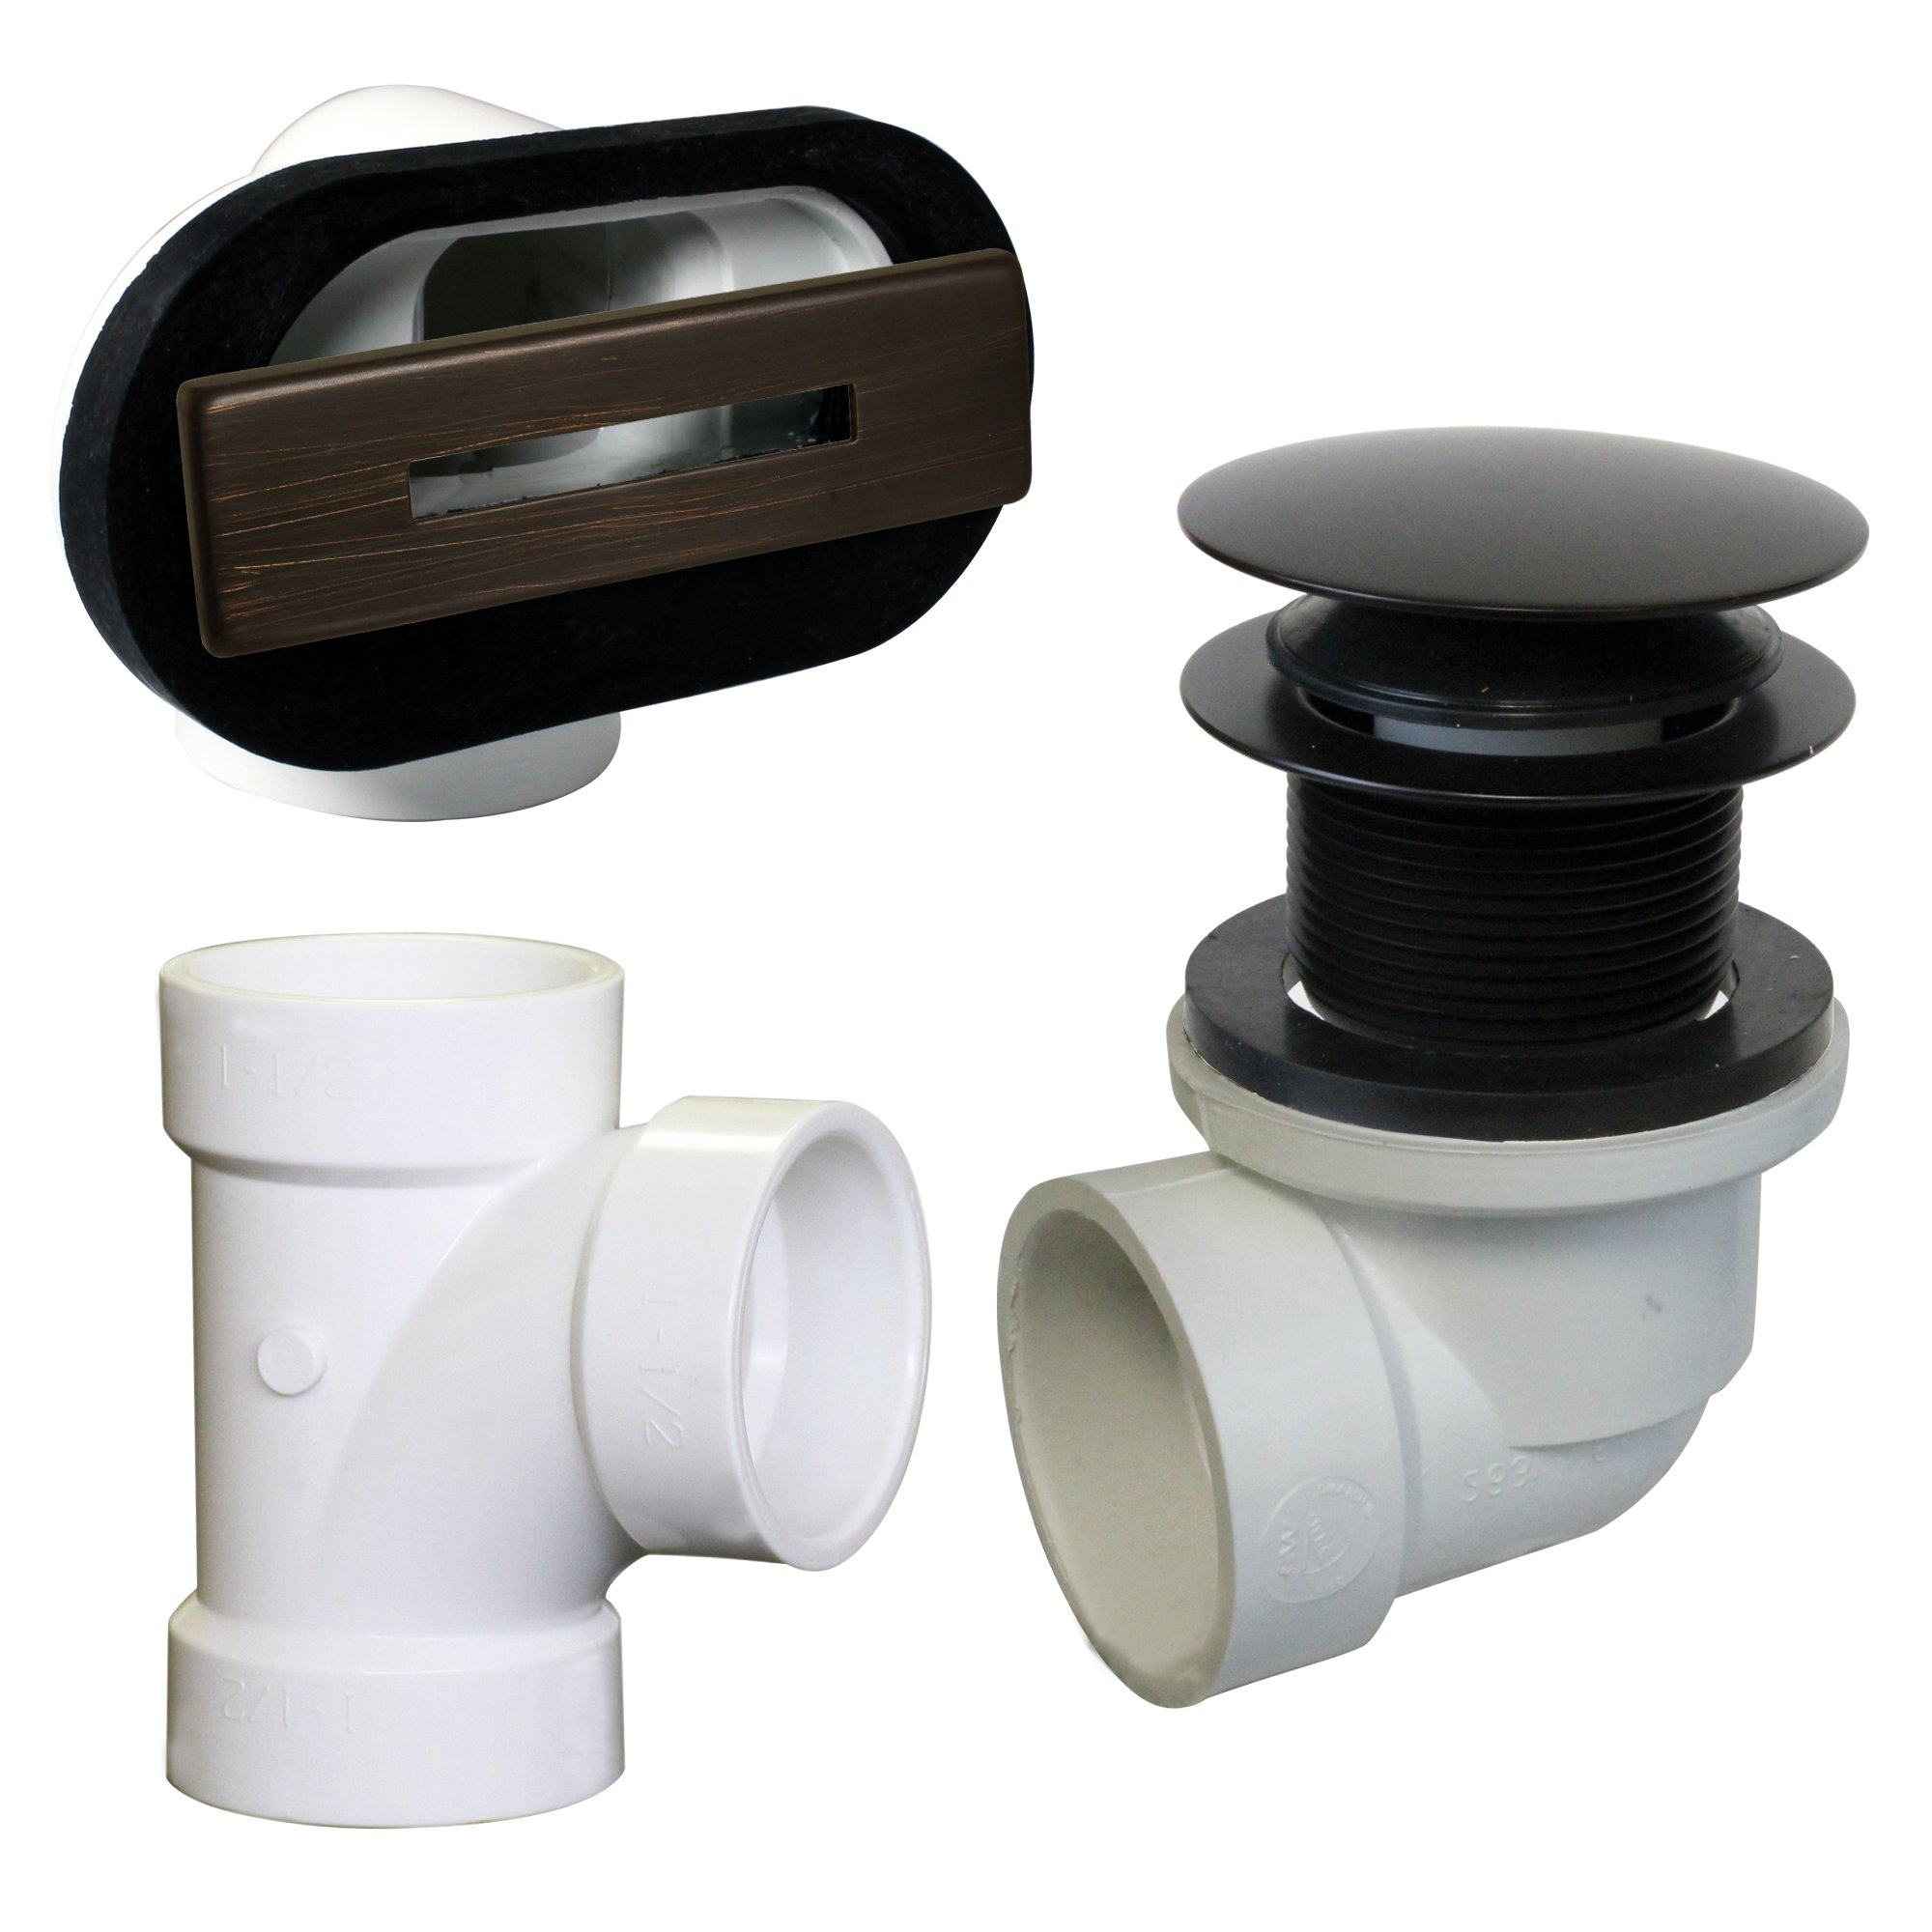 Westbrass D560RK-12 Linear Overflow Plumber's Pack withTee and ADA Tip-Toe Drain (Oil Rubbed Bronze)